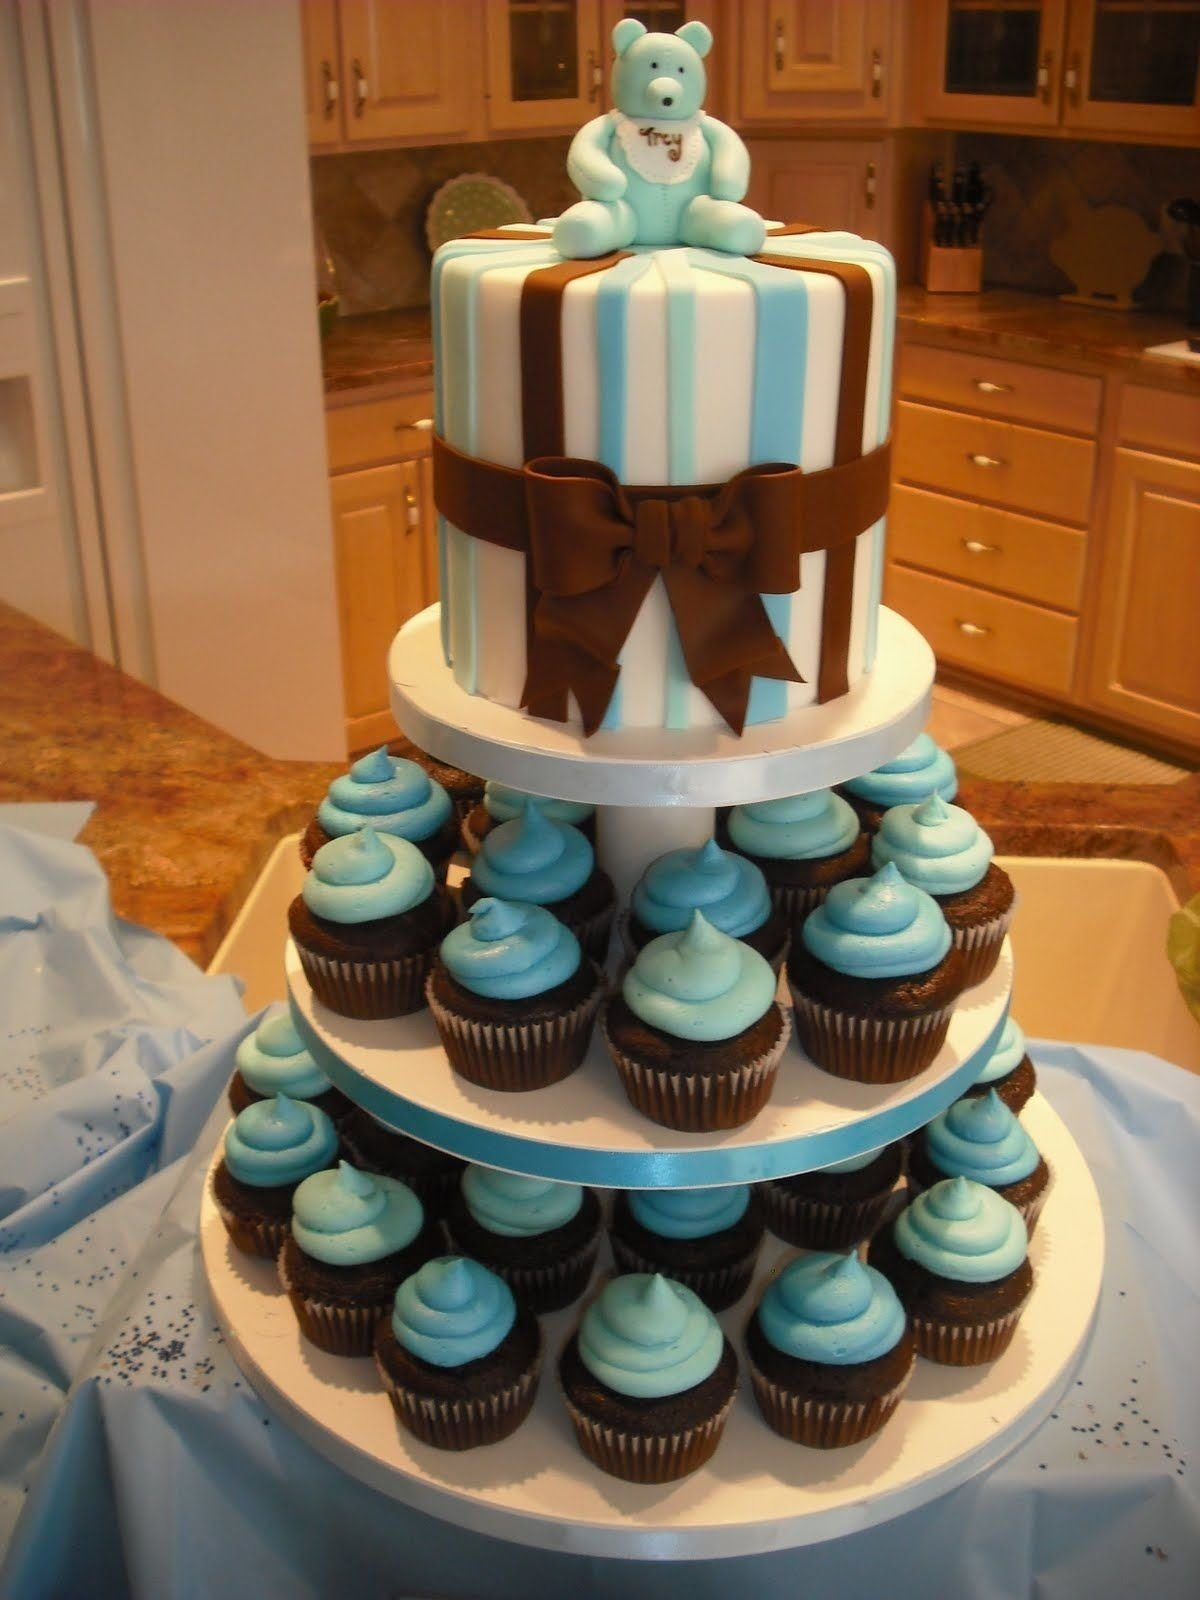 10 Trendy Baby Shower Cupcake Ideas For A Boy simple baby shower cake designs sprinklebelle baby boy shower